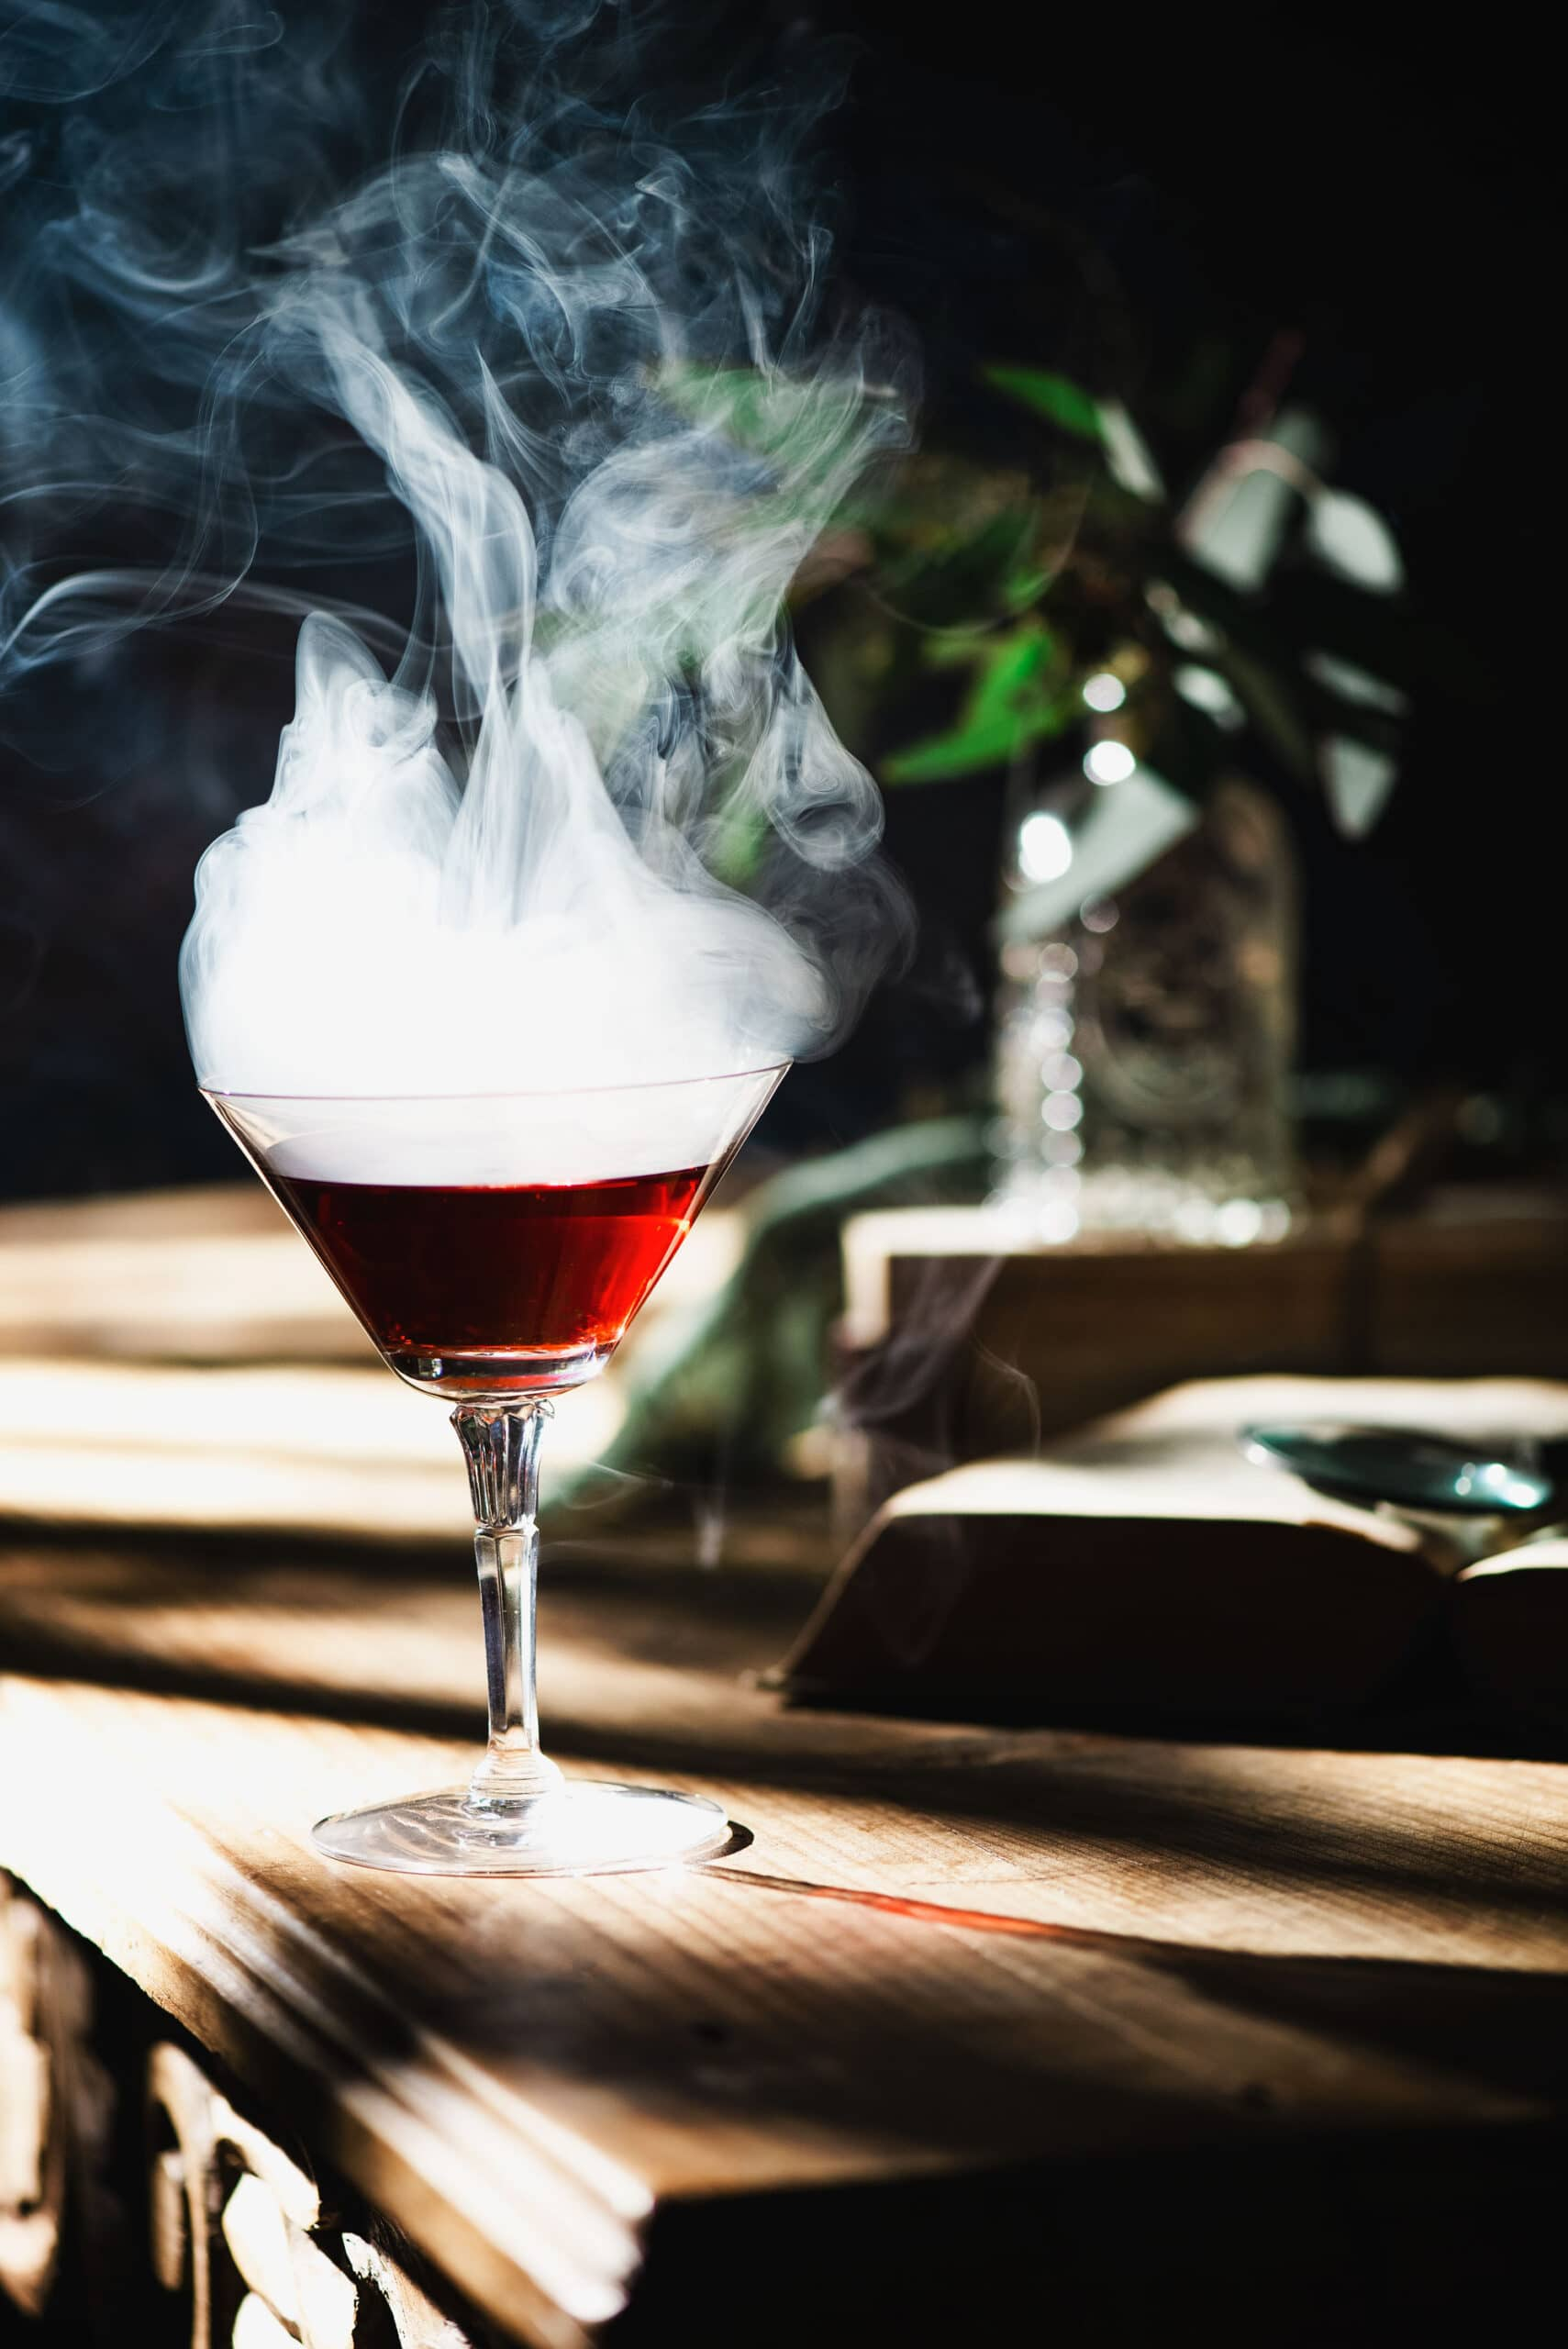 Martini glass with Washington apple cocktail and smoke on wooden table